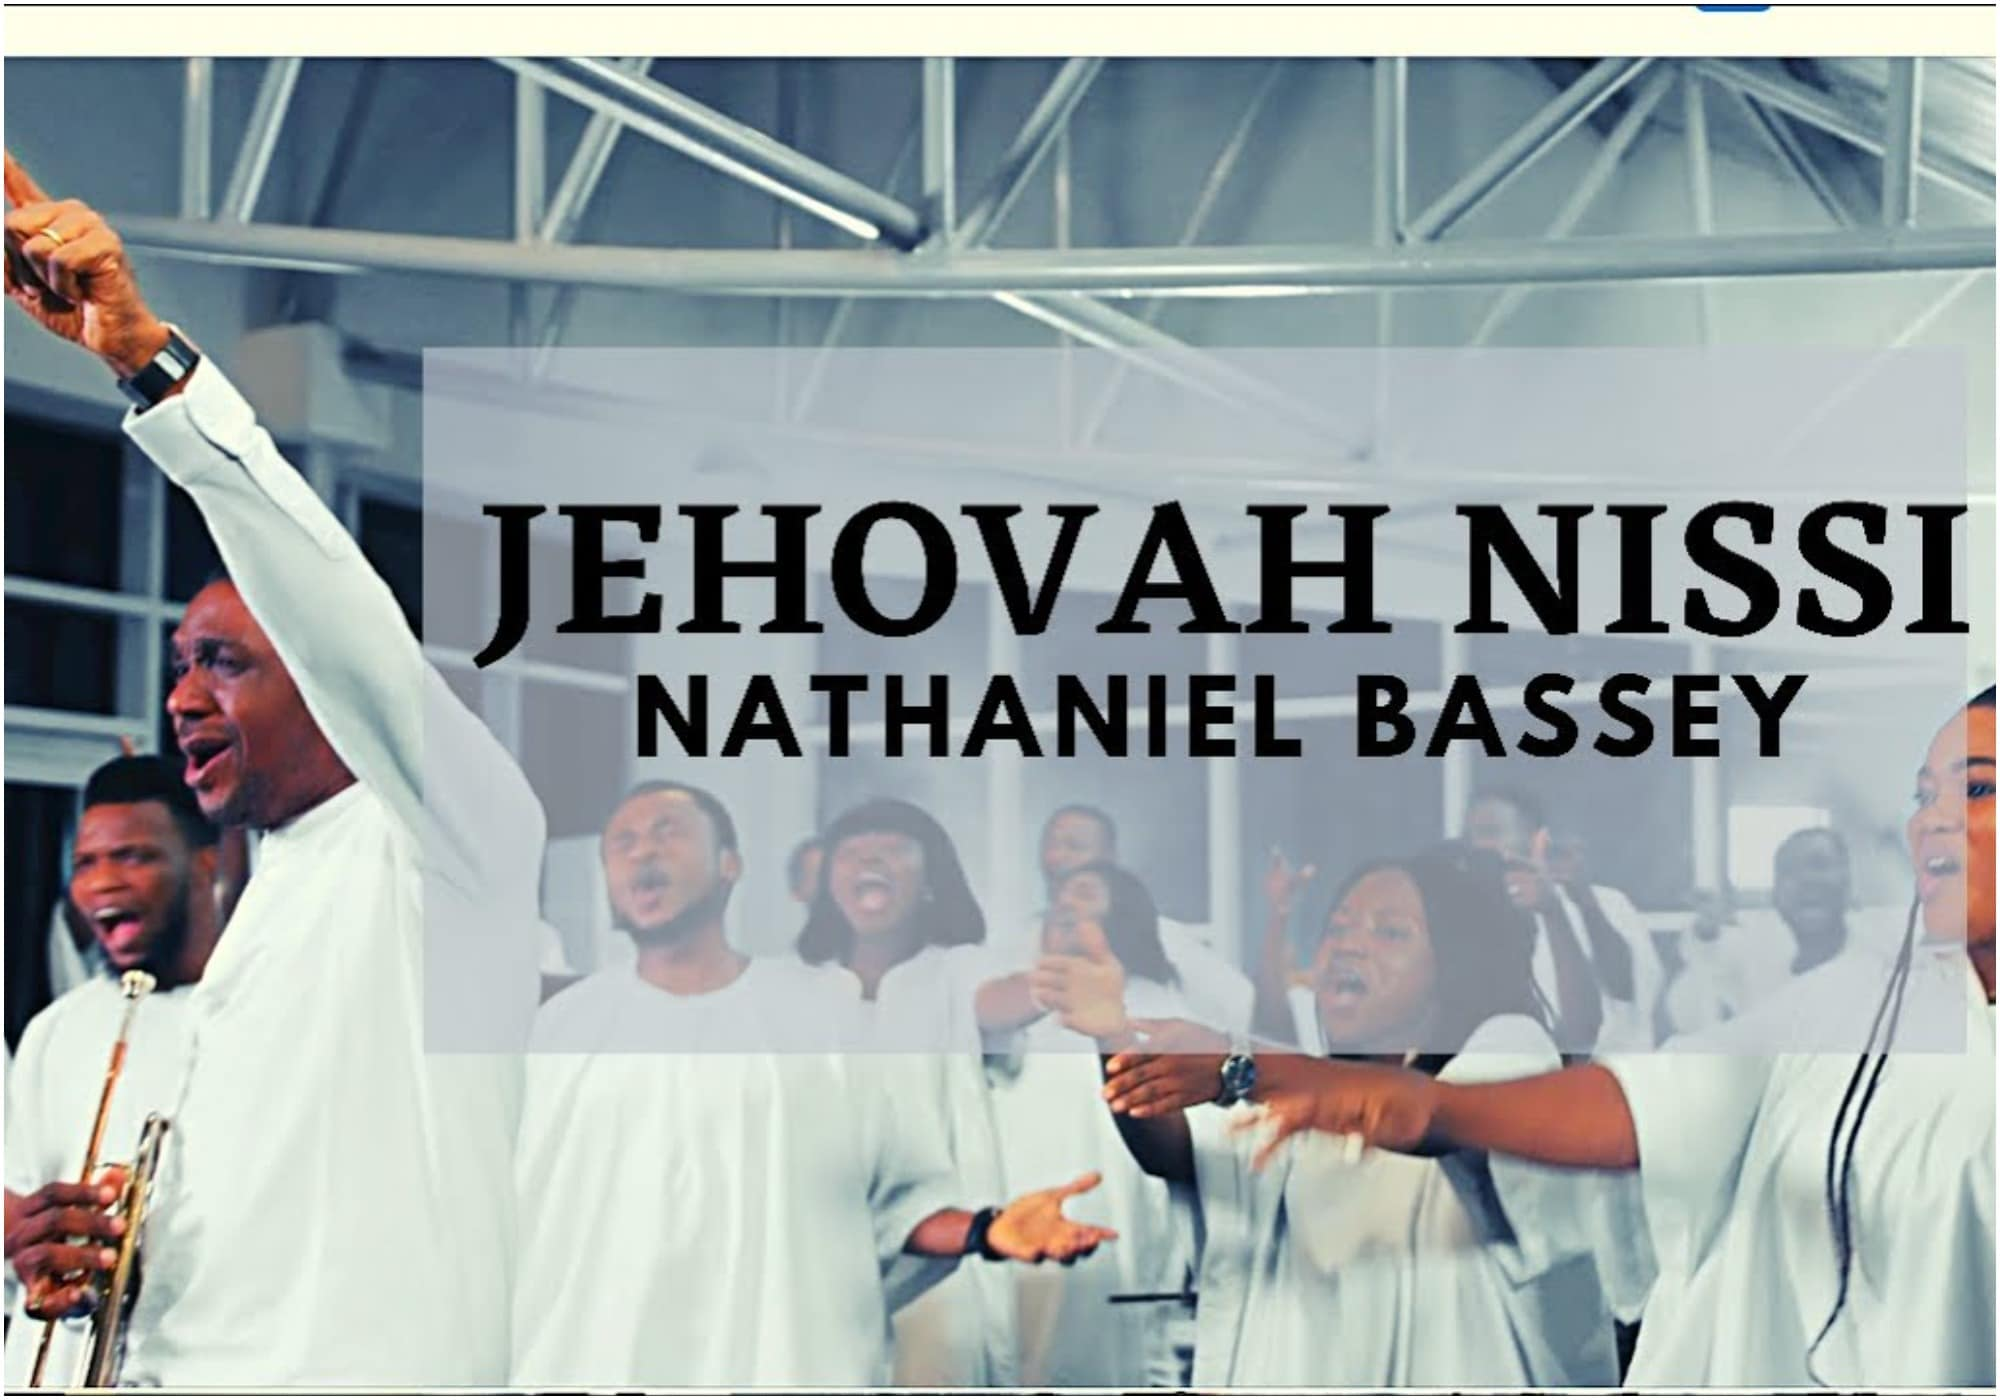 Nathaniel Bassey - Jehovah Nissi